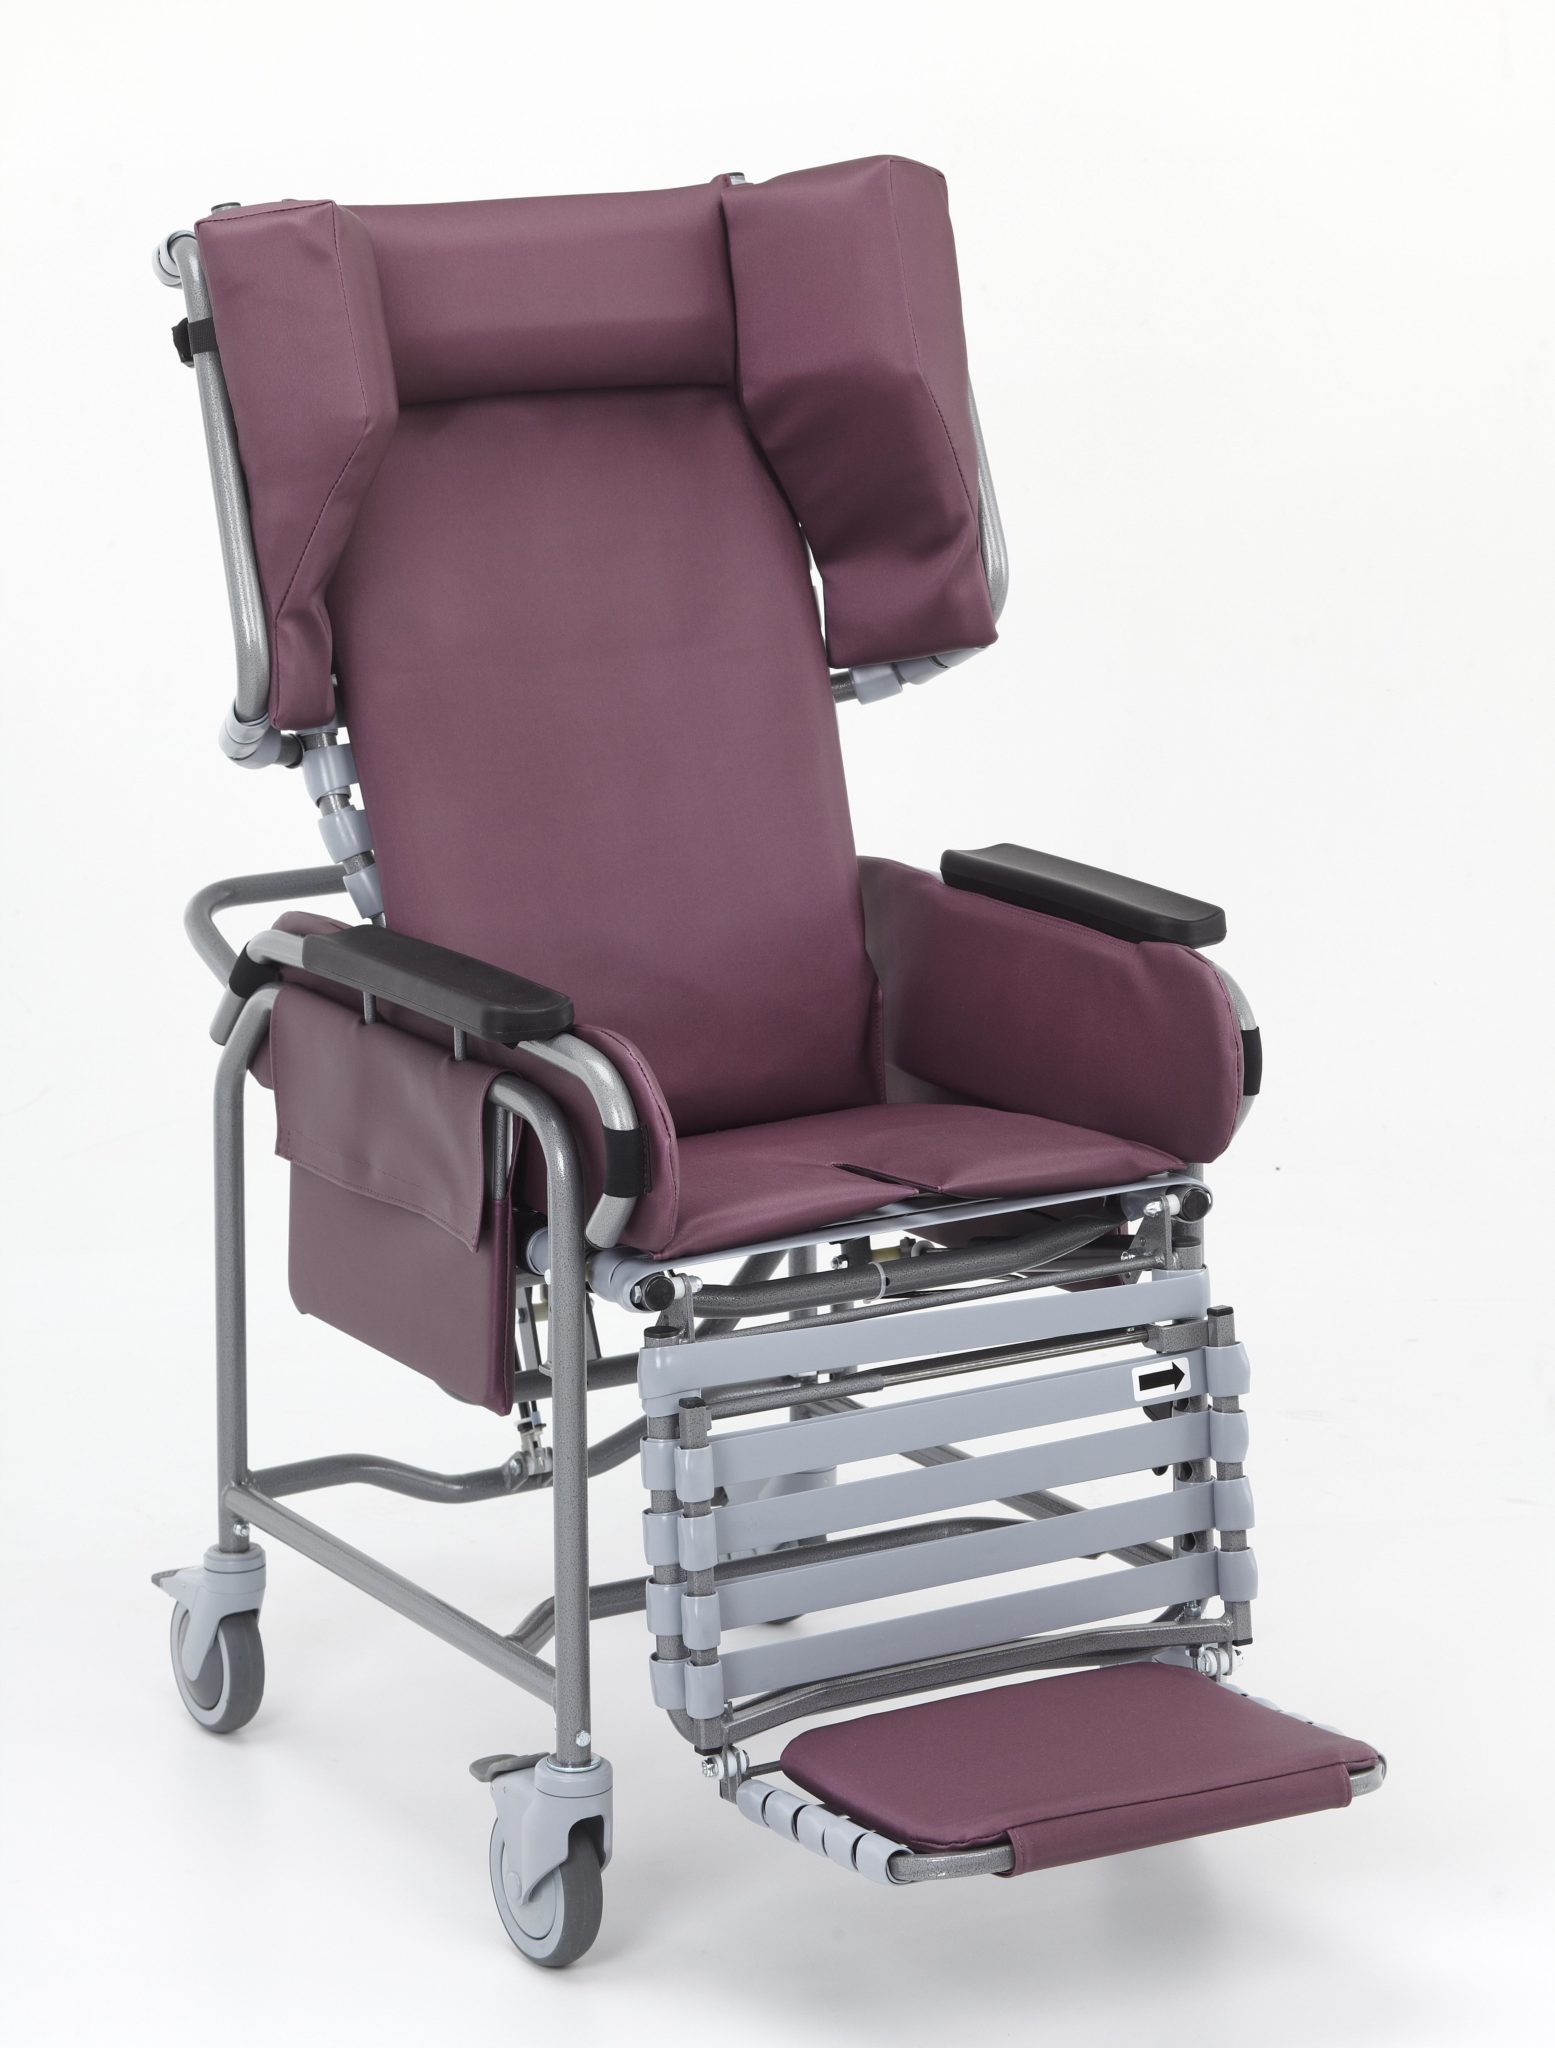 broda chair accessories cars potty 30vt in minneapolis mn corner home medical